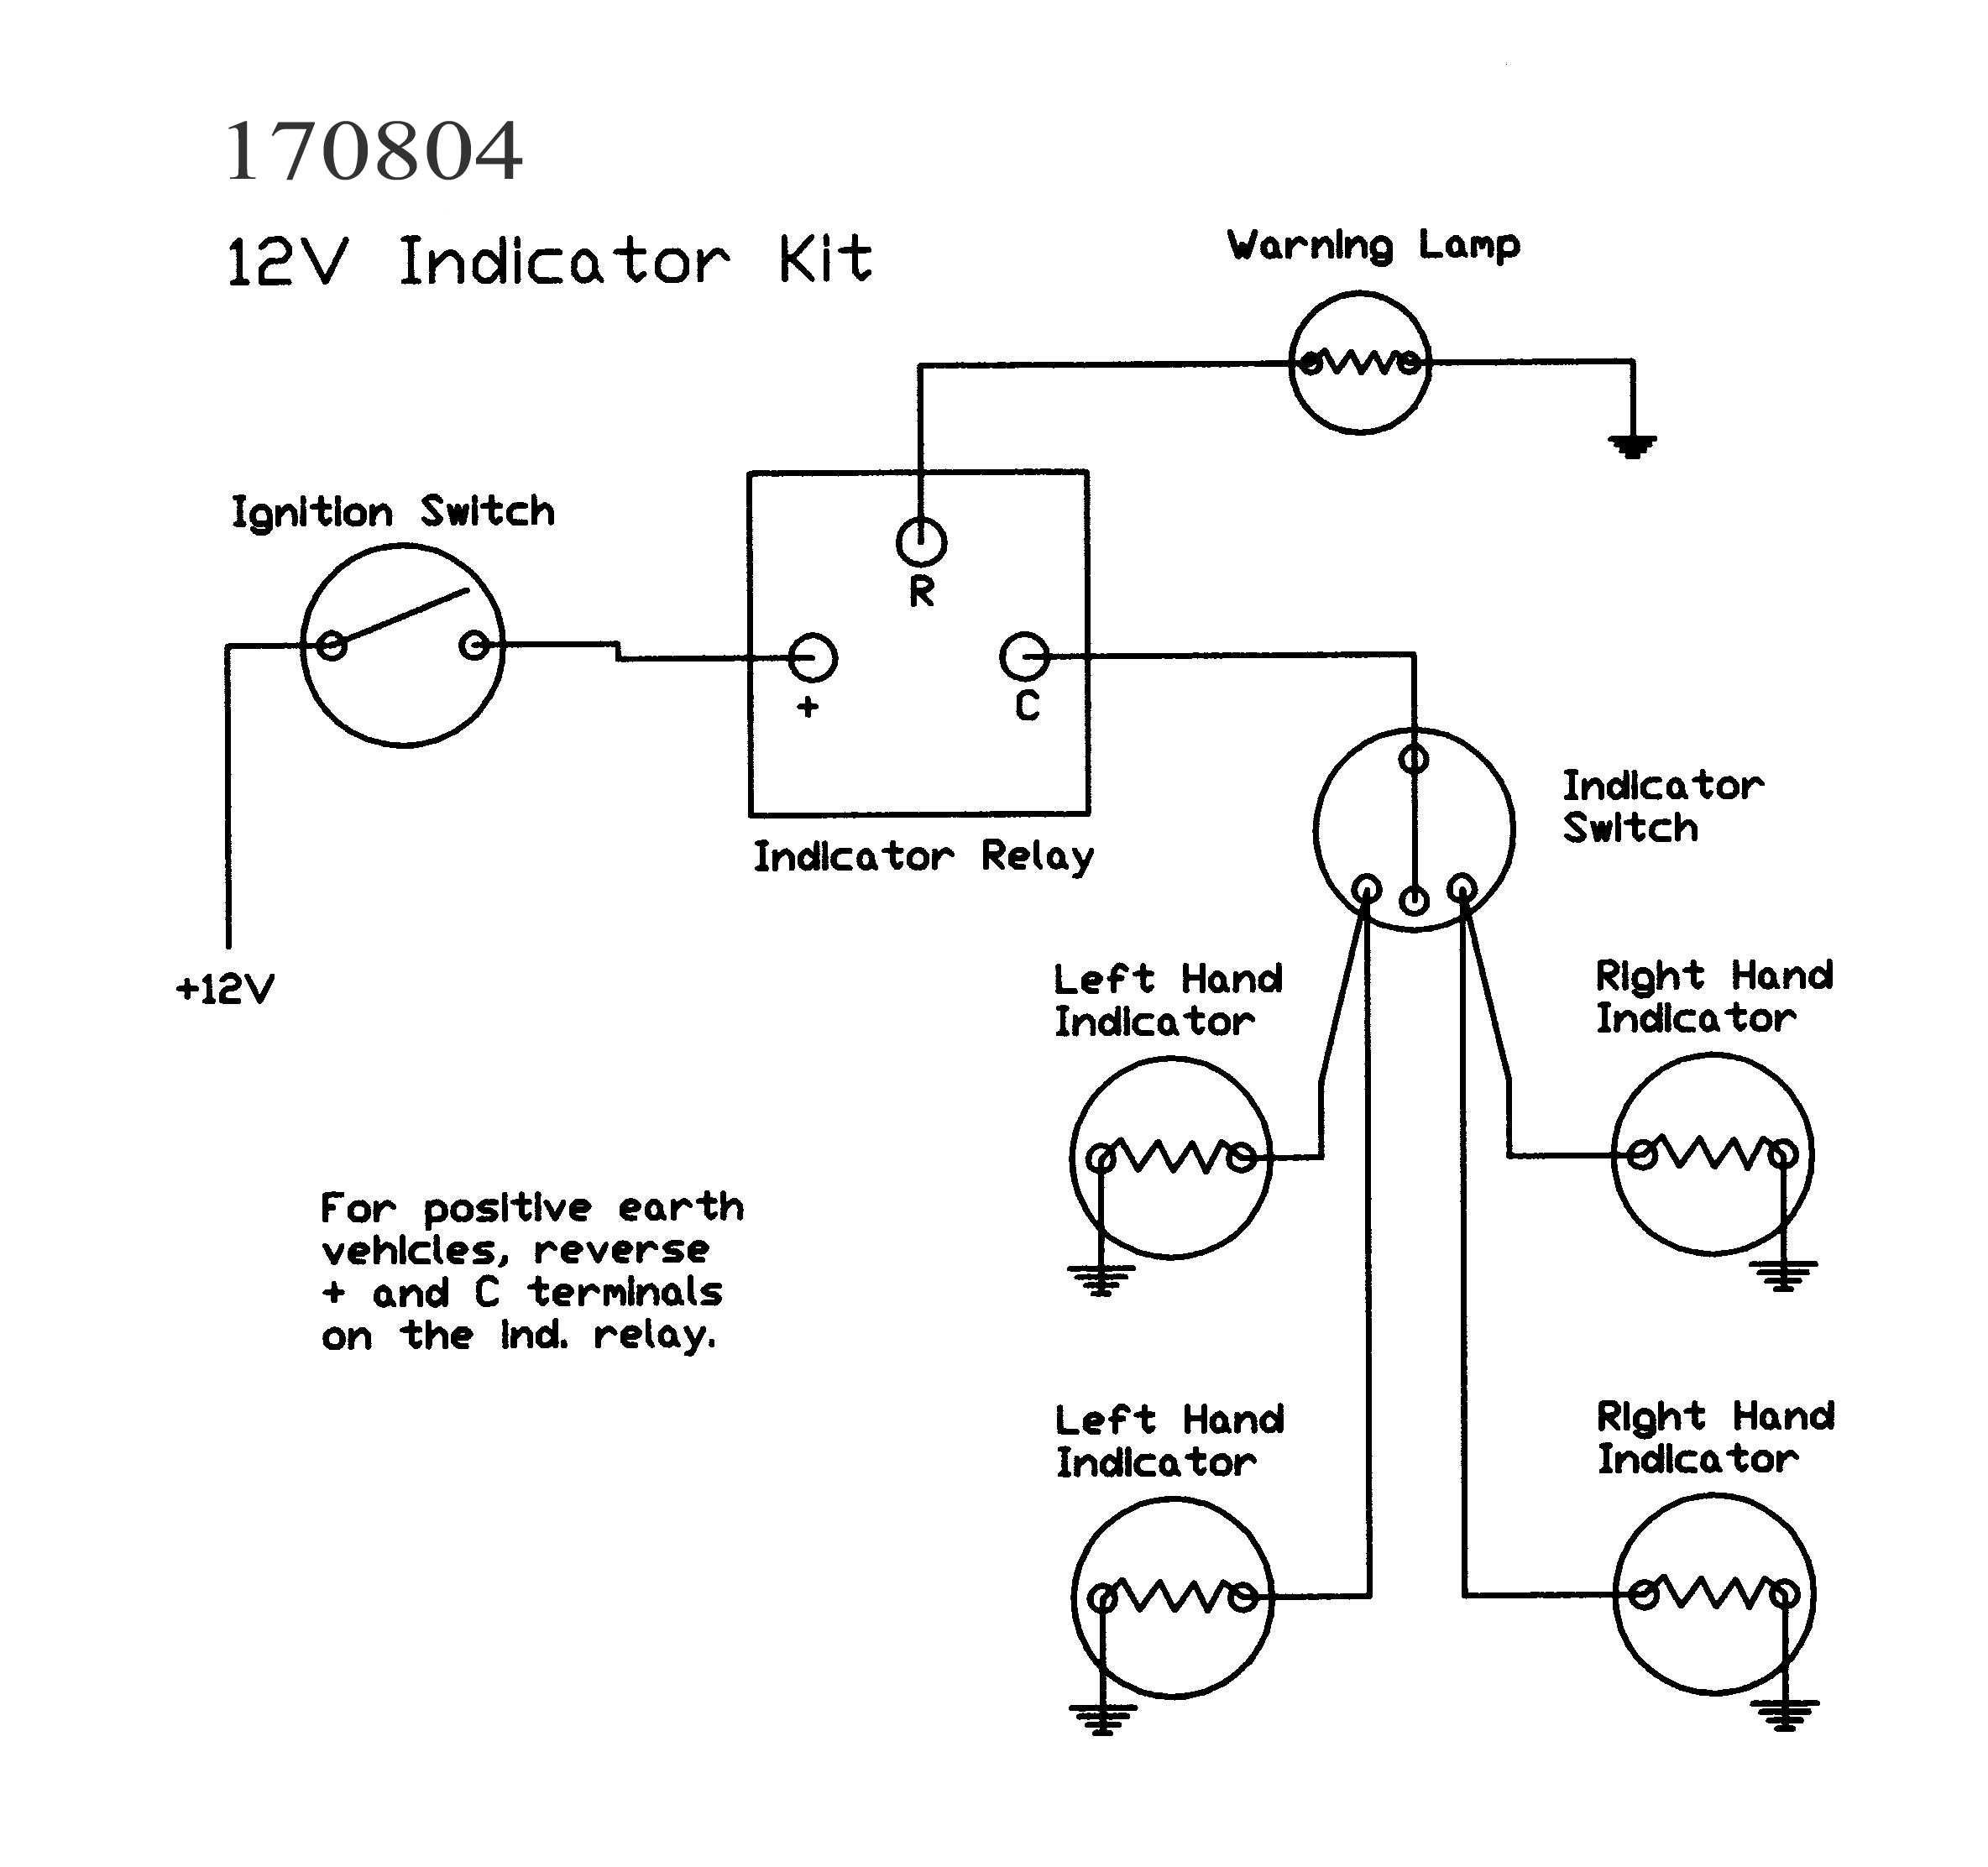 Diagram 12v Accessory Wiring Diagram Led Indicator Light free ... on motorcycle led turn signals, motorcycle turn signal speaker, motorcycle wiring schematics, simple turn signal diagram, motorcycle trailer wiring, motorcycle signal lights, gm turn signal switch diagram, motorcycle hand signals, motorcycle ignition wiring, motorcycle turn signal installation, motorcycle diagram with label, turn signal schematic diagram, motorcycle coil wiring, motorcycle mini turn signals, motorcycle turn signal wiring kit, motorcycle turn signal parts, motorcycle turn signal connector, basic motorcycle diagram, motorcycle turn signal circuit, motorcycle turn signal bracket,